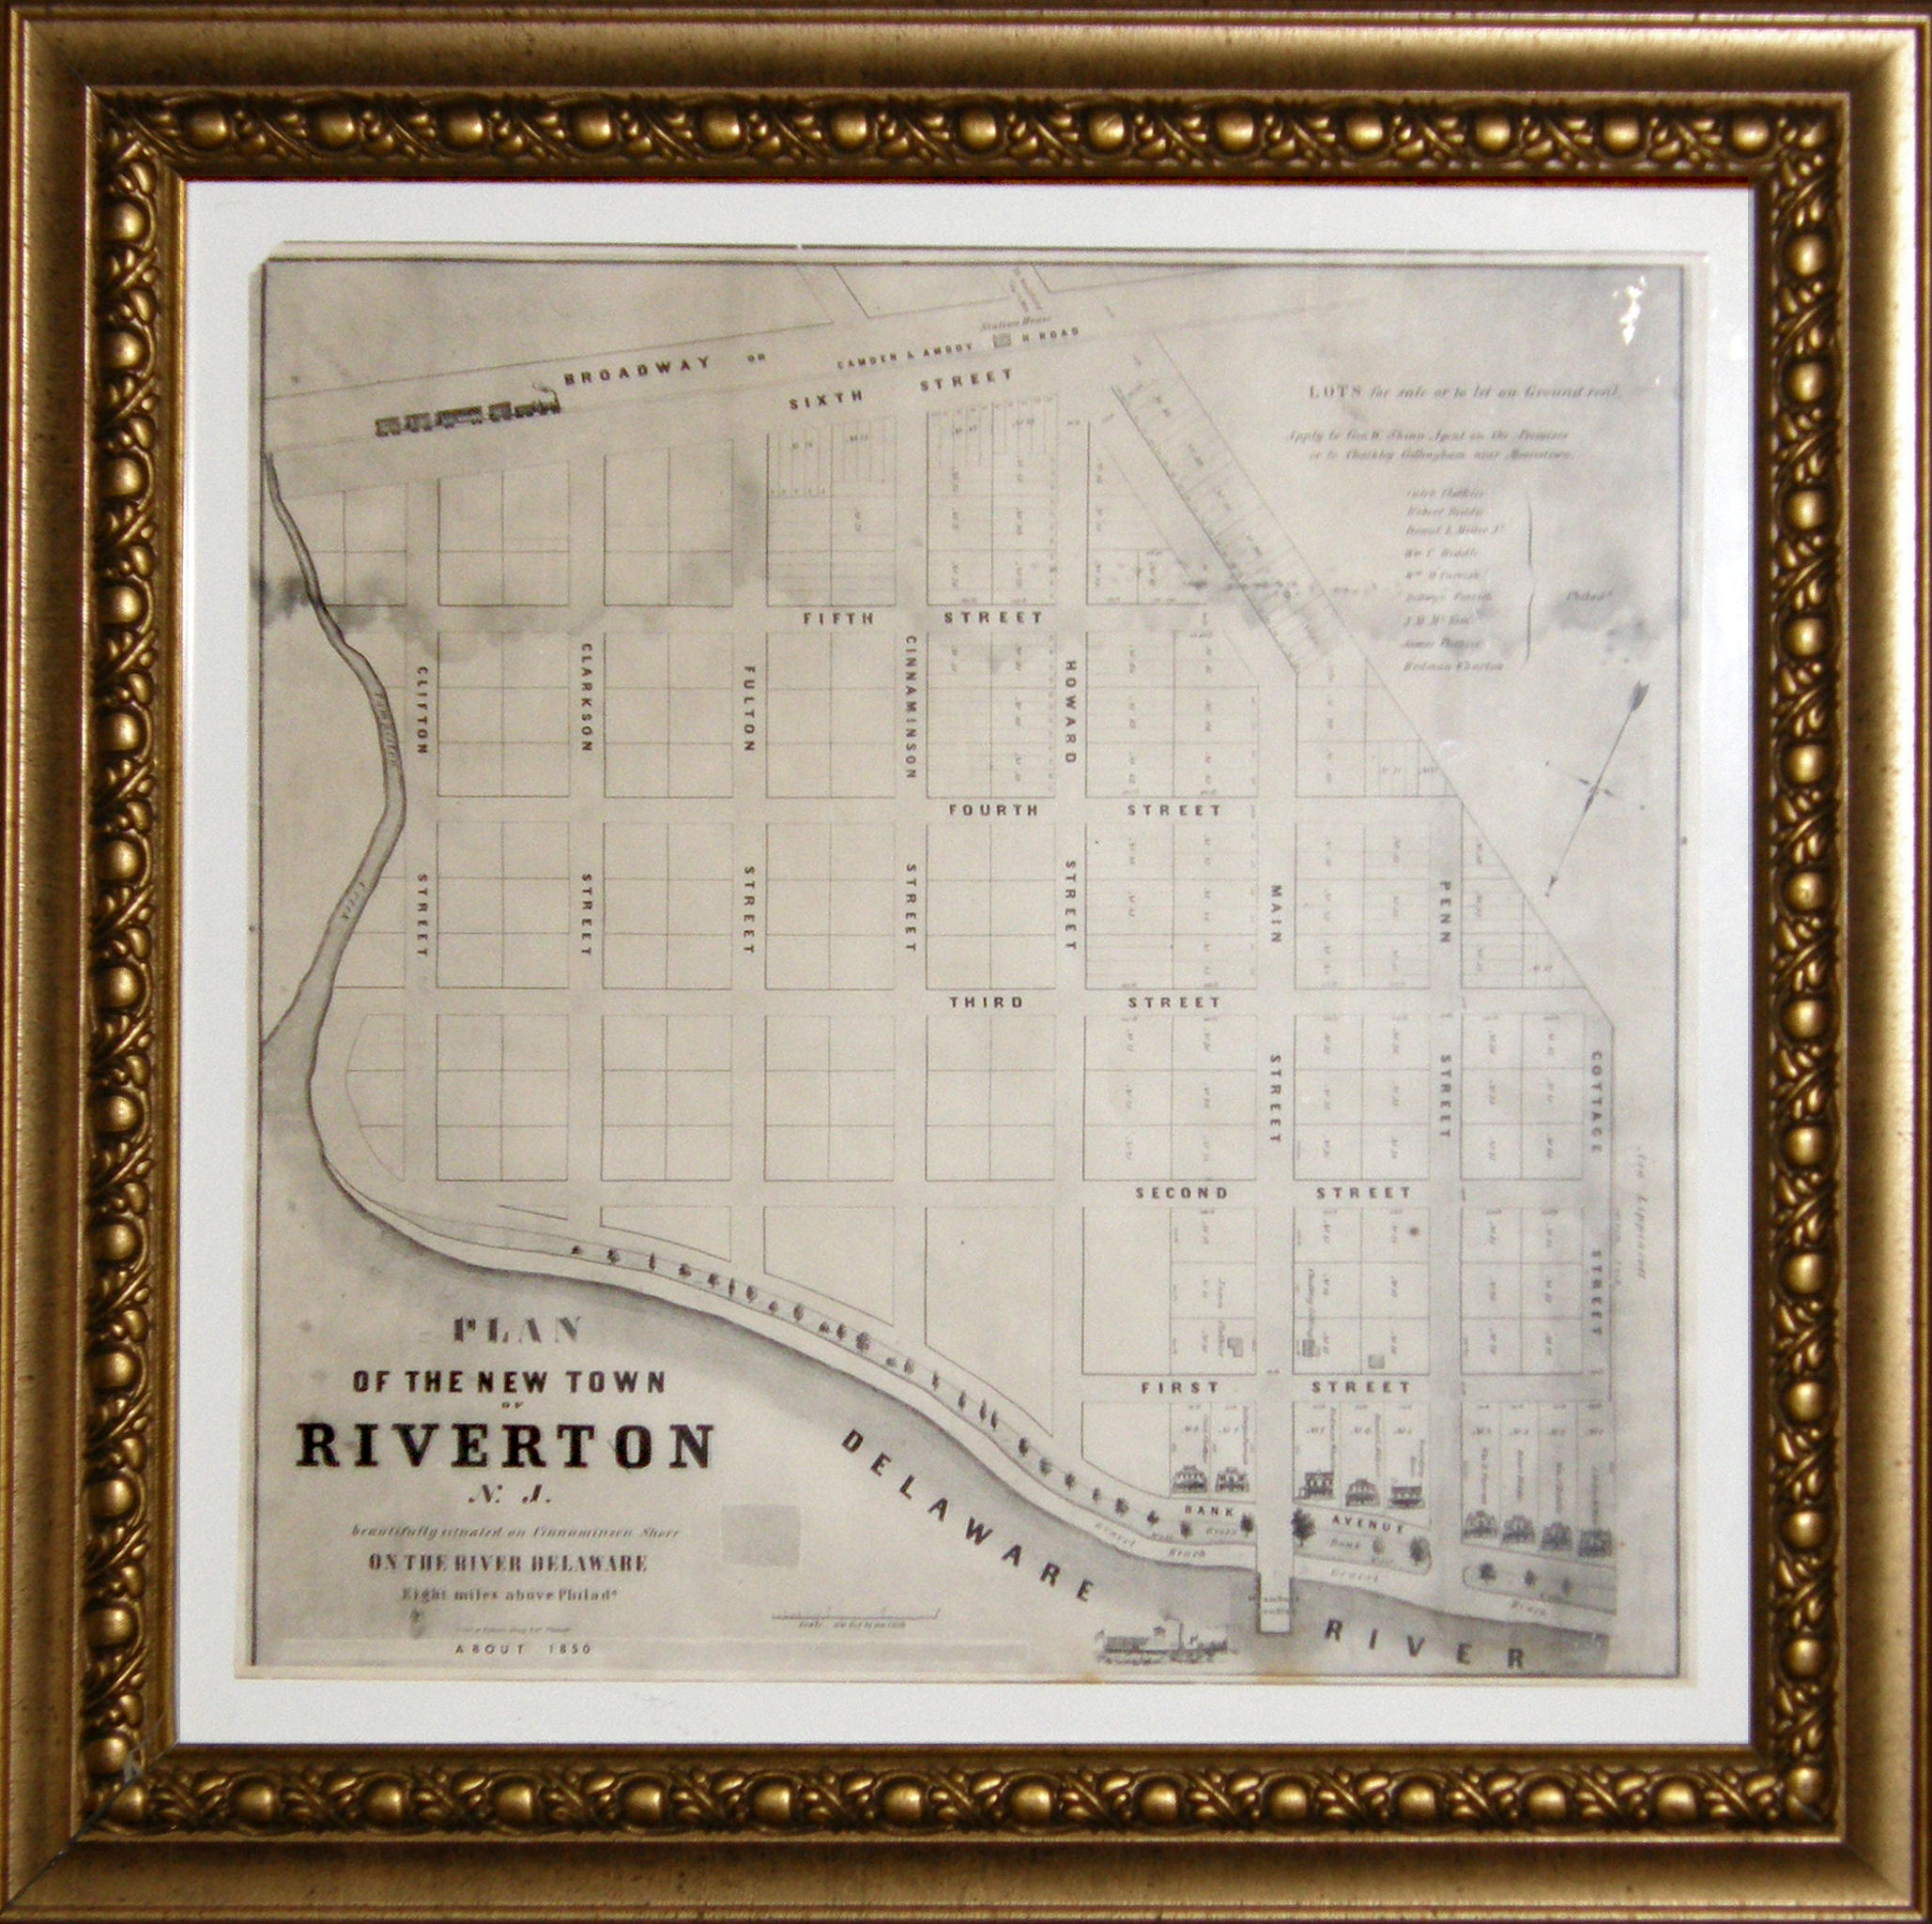 Clothier clan returns to founder s bank avenue home for The riverton